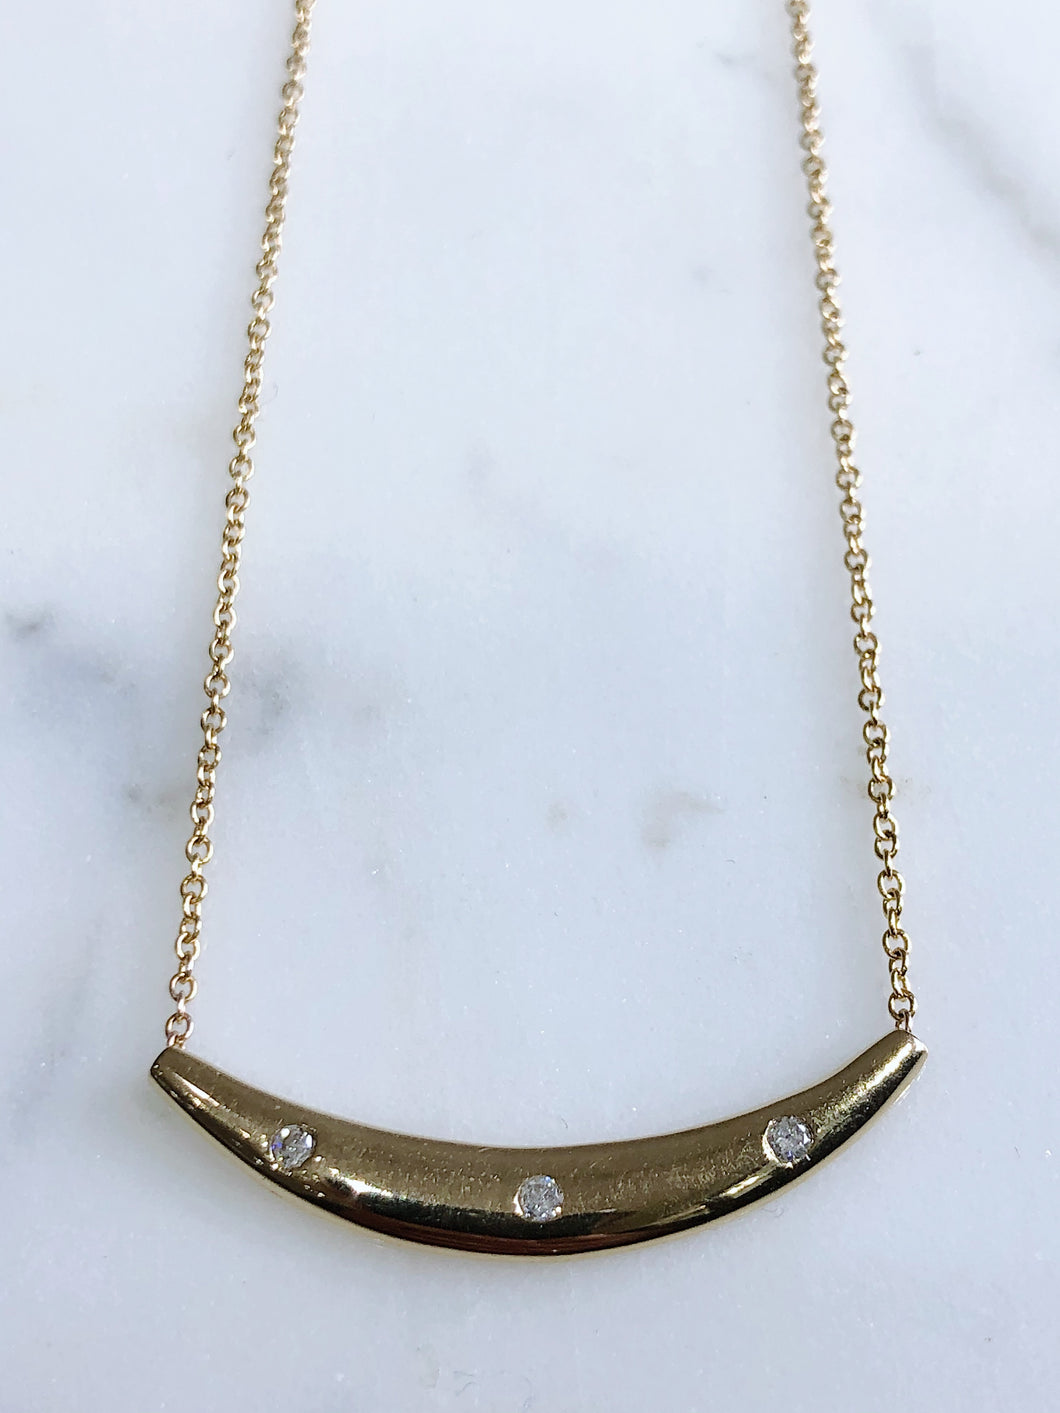 10K Yellow Gold 3-Row Curved Pendant Necklace